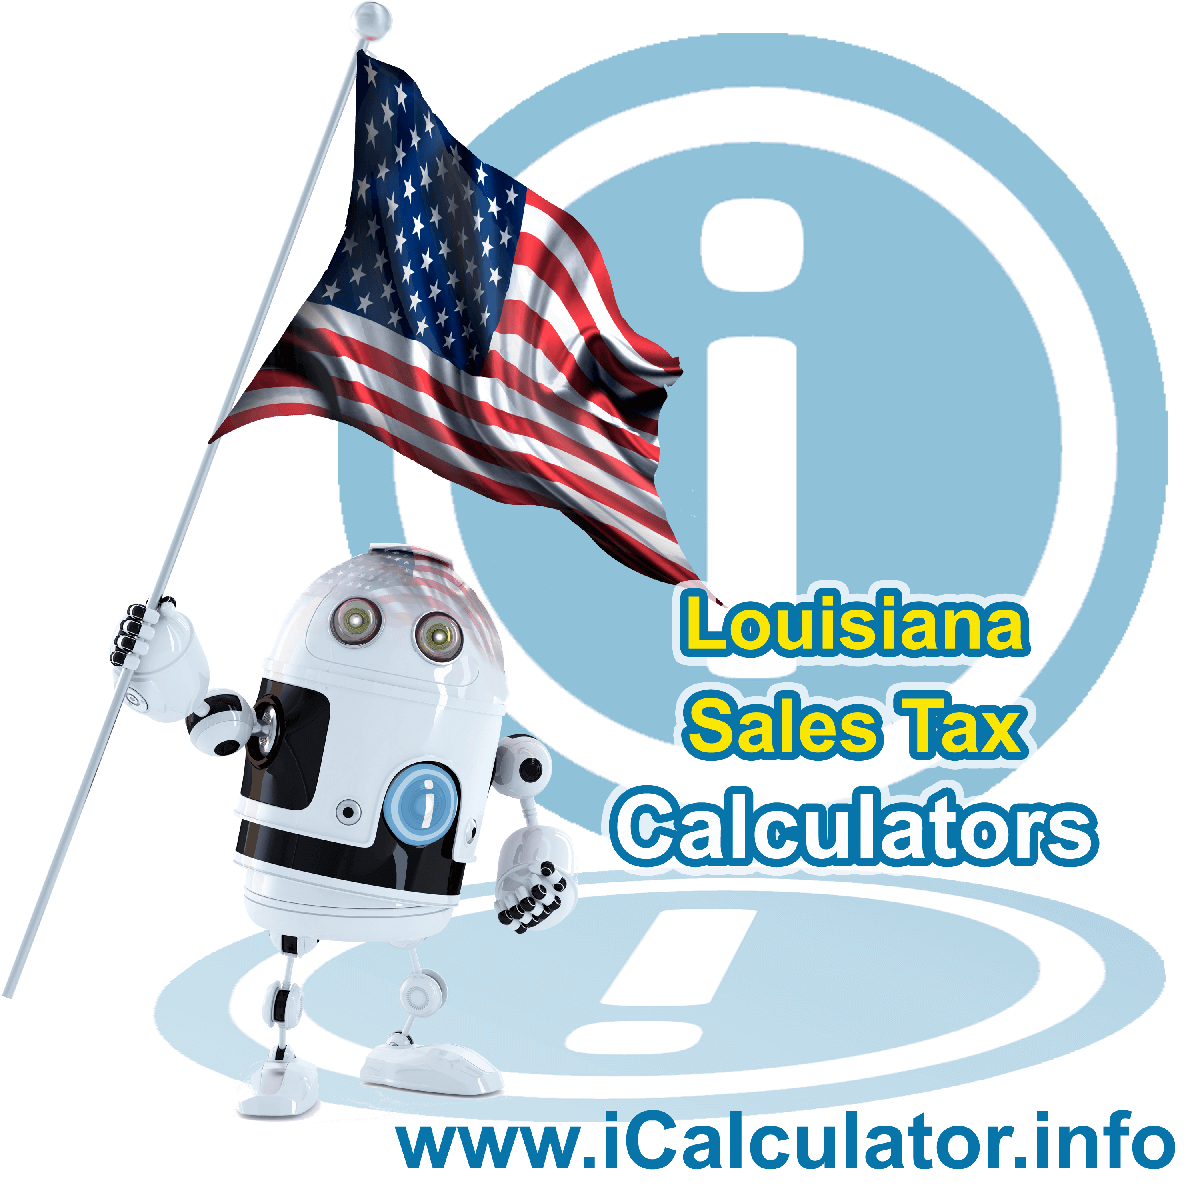 Saint James Parish Sales Rates: This image illustrates a calculator robot calculating Saint James Parish sales tax manually using the Saint James Parish Sales Tax Formula. You can use this information to calculate Saint James Parish Sales Tax manually or use the Saint James Parish Sales Tax Calculator to calculate sales tax online.